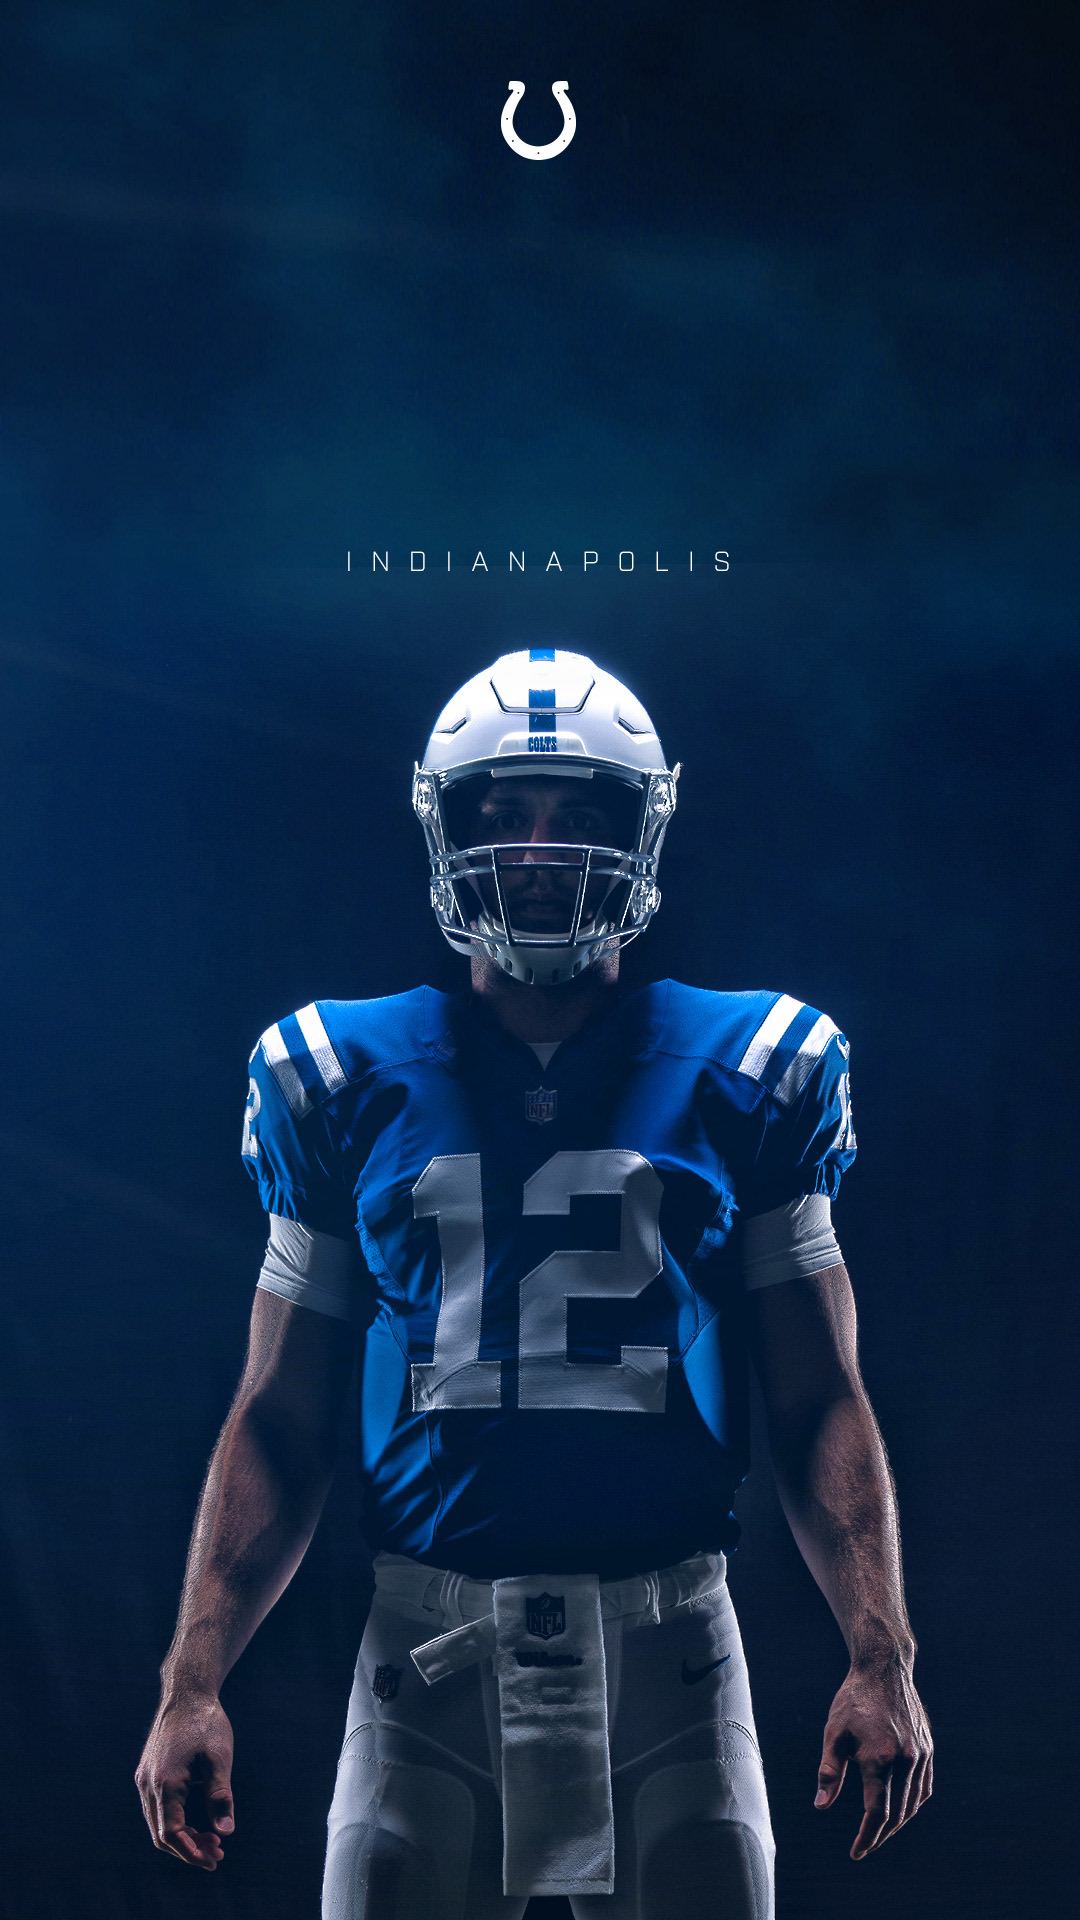 The Official Website Of The Indianapolis Colts